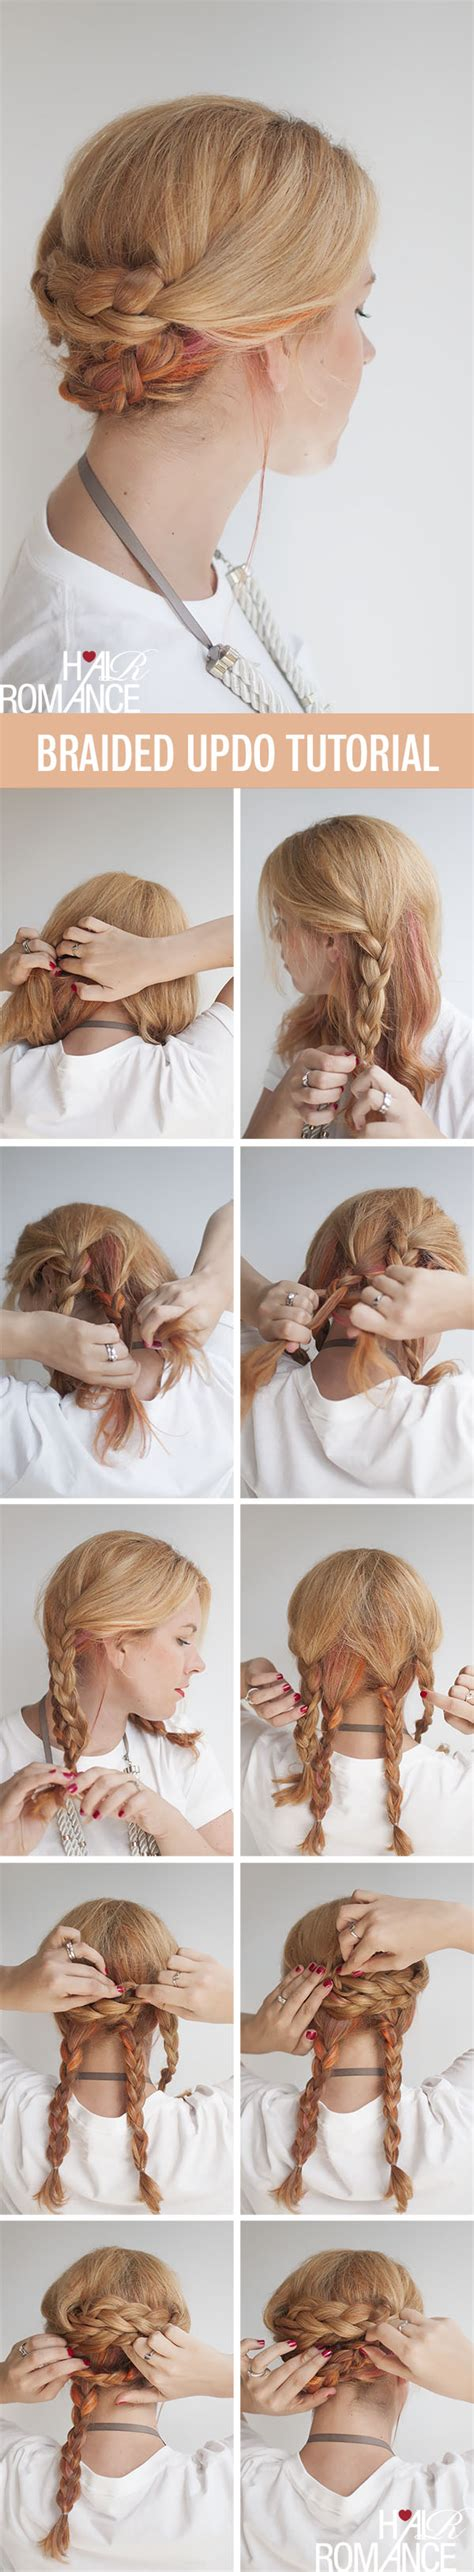 Easy Updo Hairstyle Tutorials by Braided Updo Hair Tutorial Hair